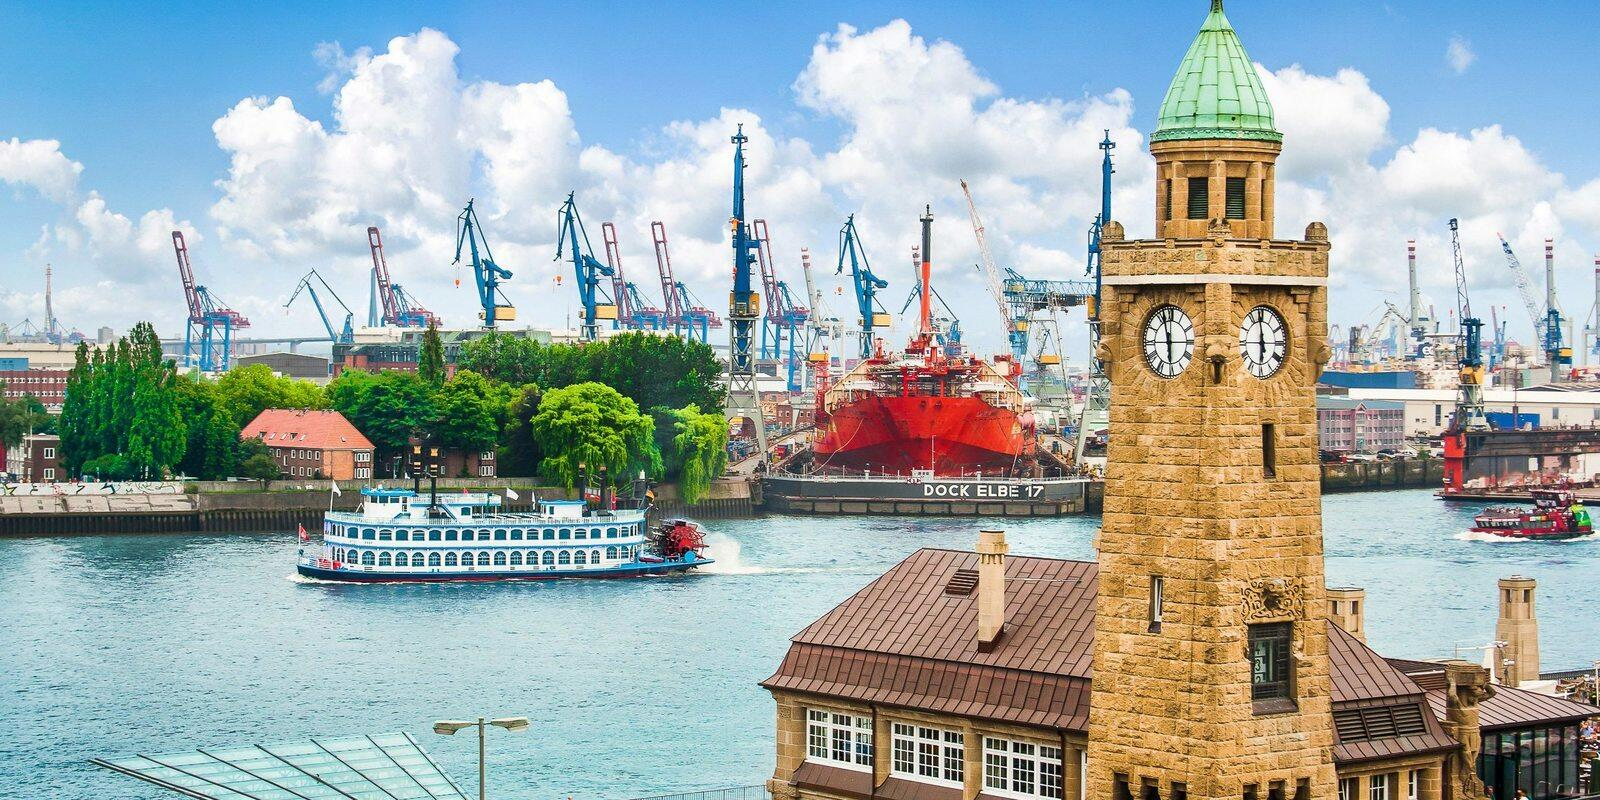 Adventure and culture: Discover Hamburg in a new way with the sailing ship